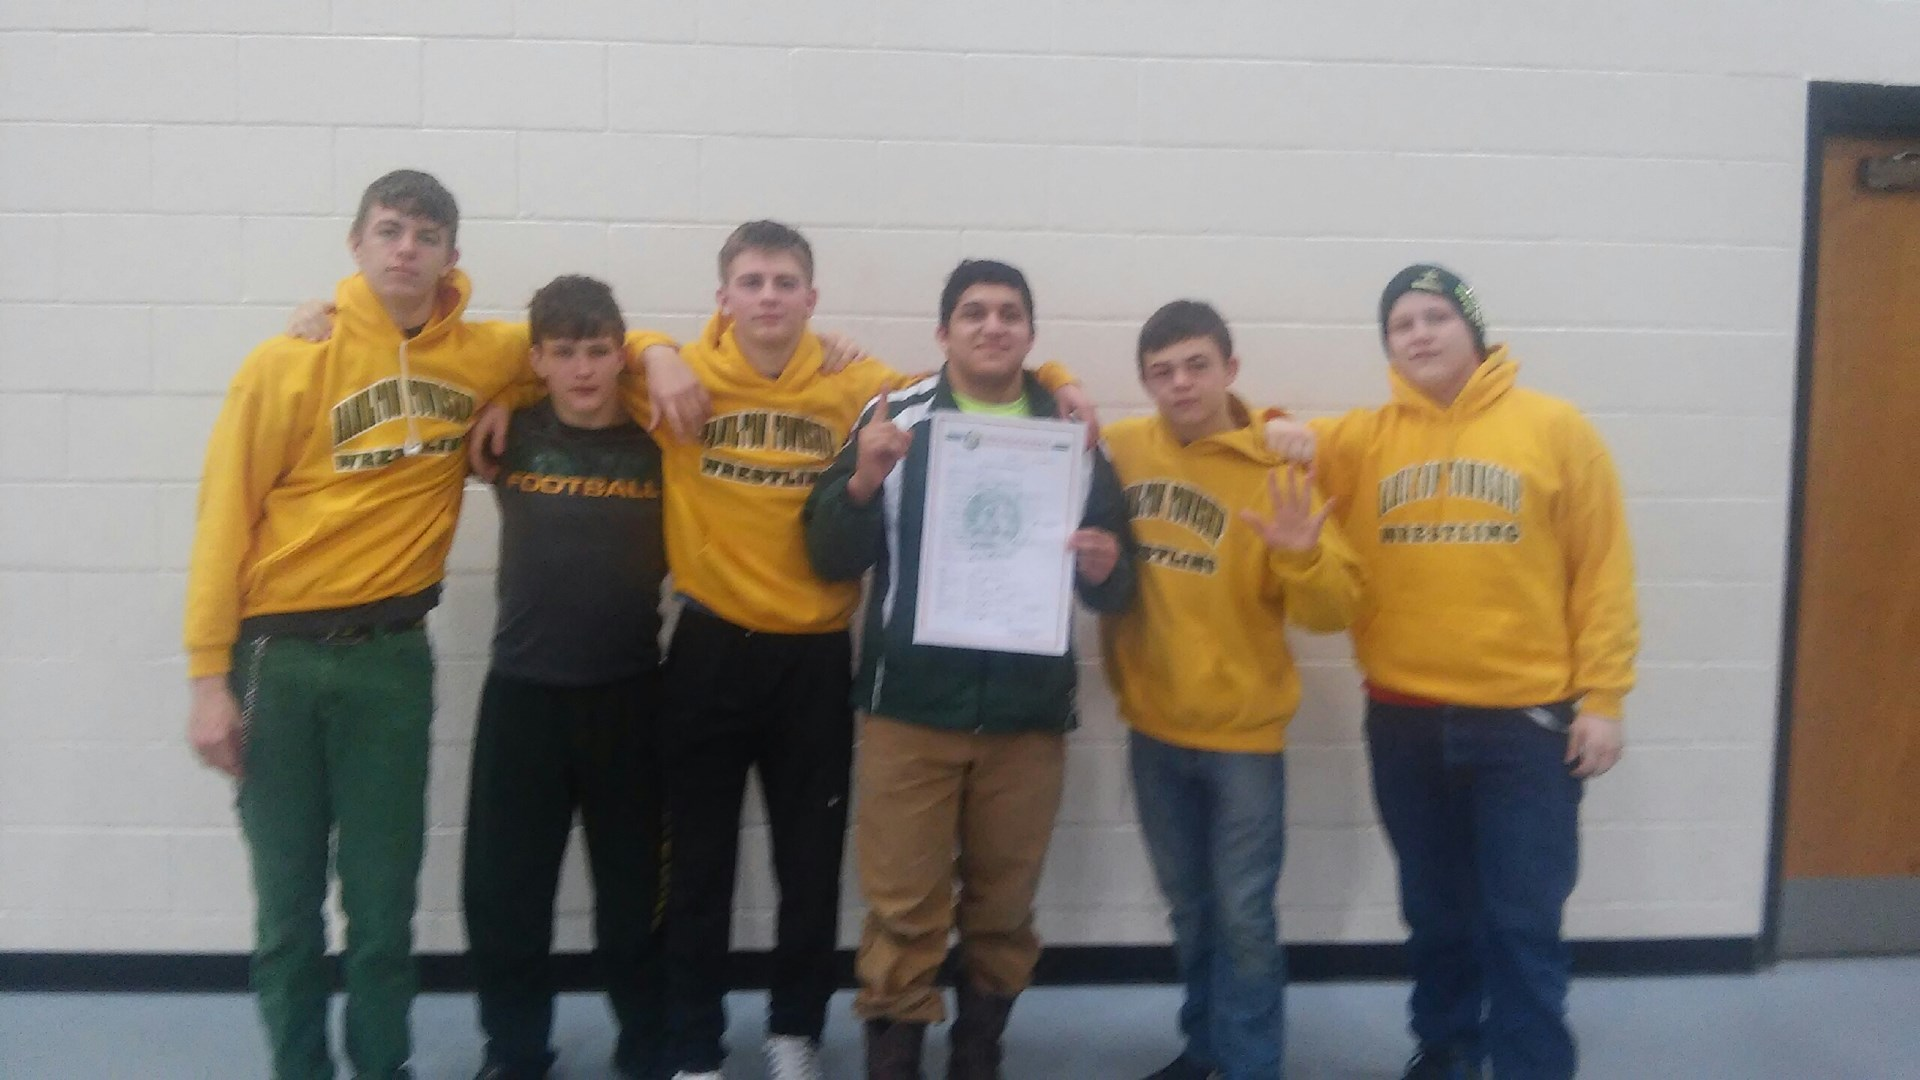 Sectional Placers